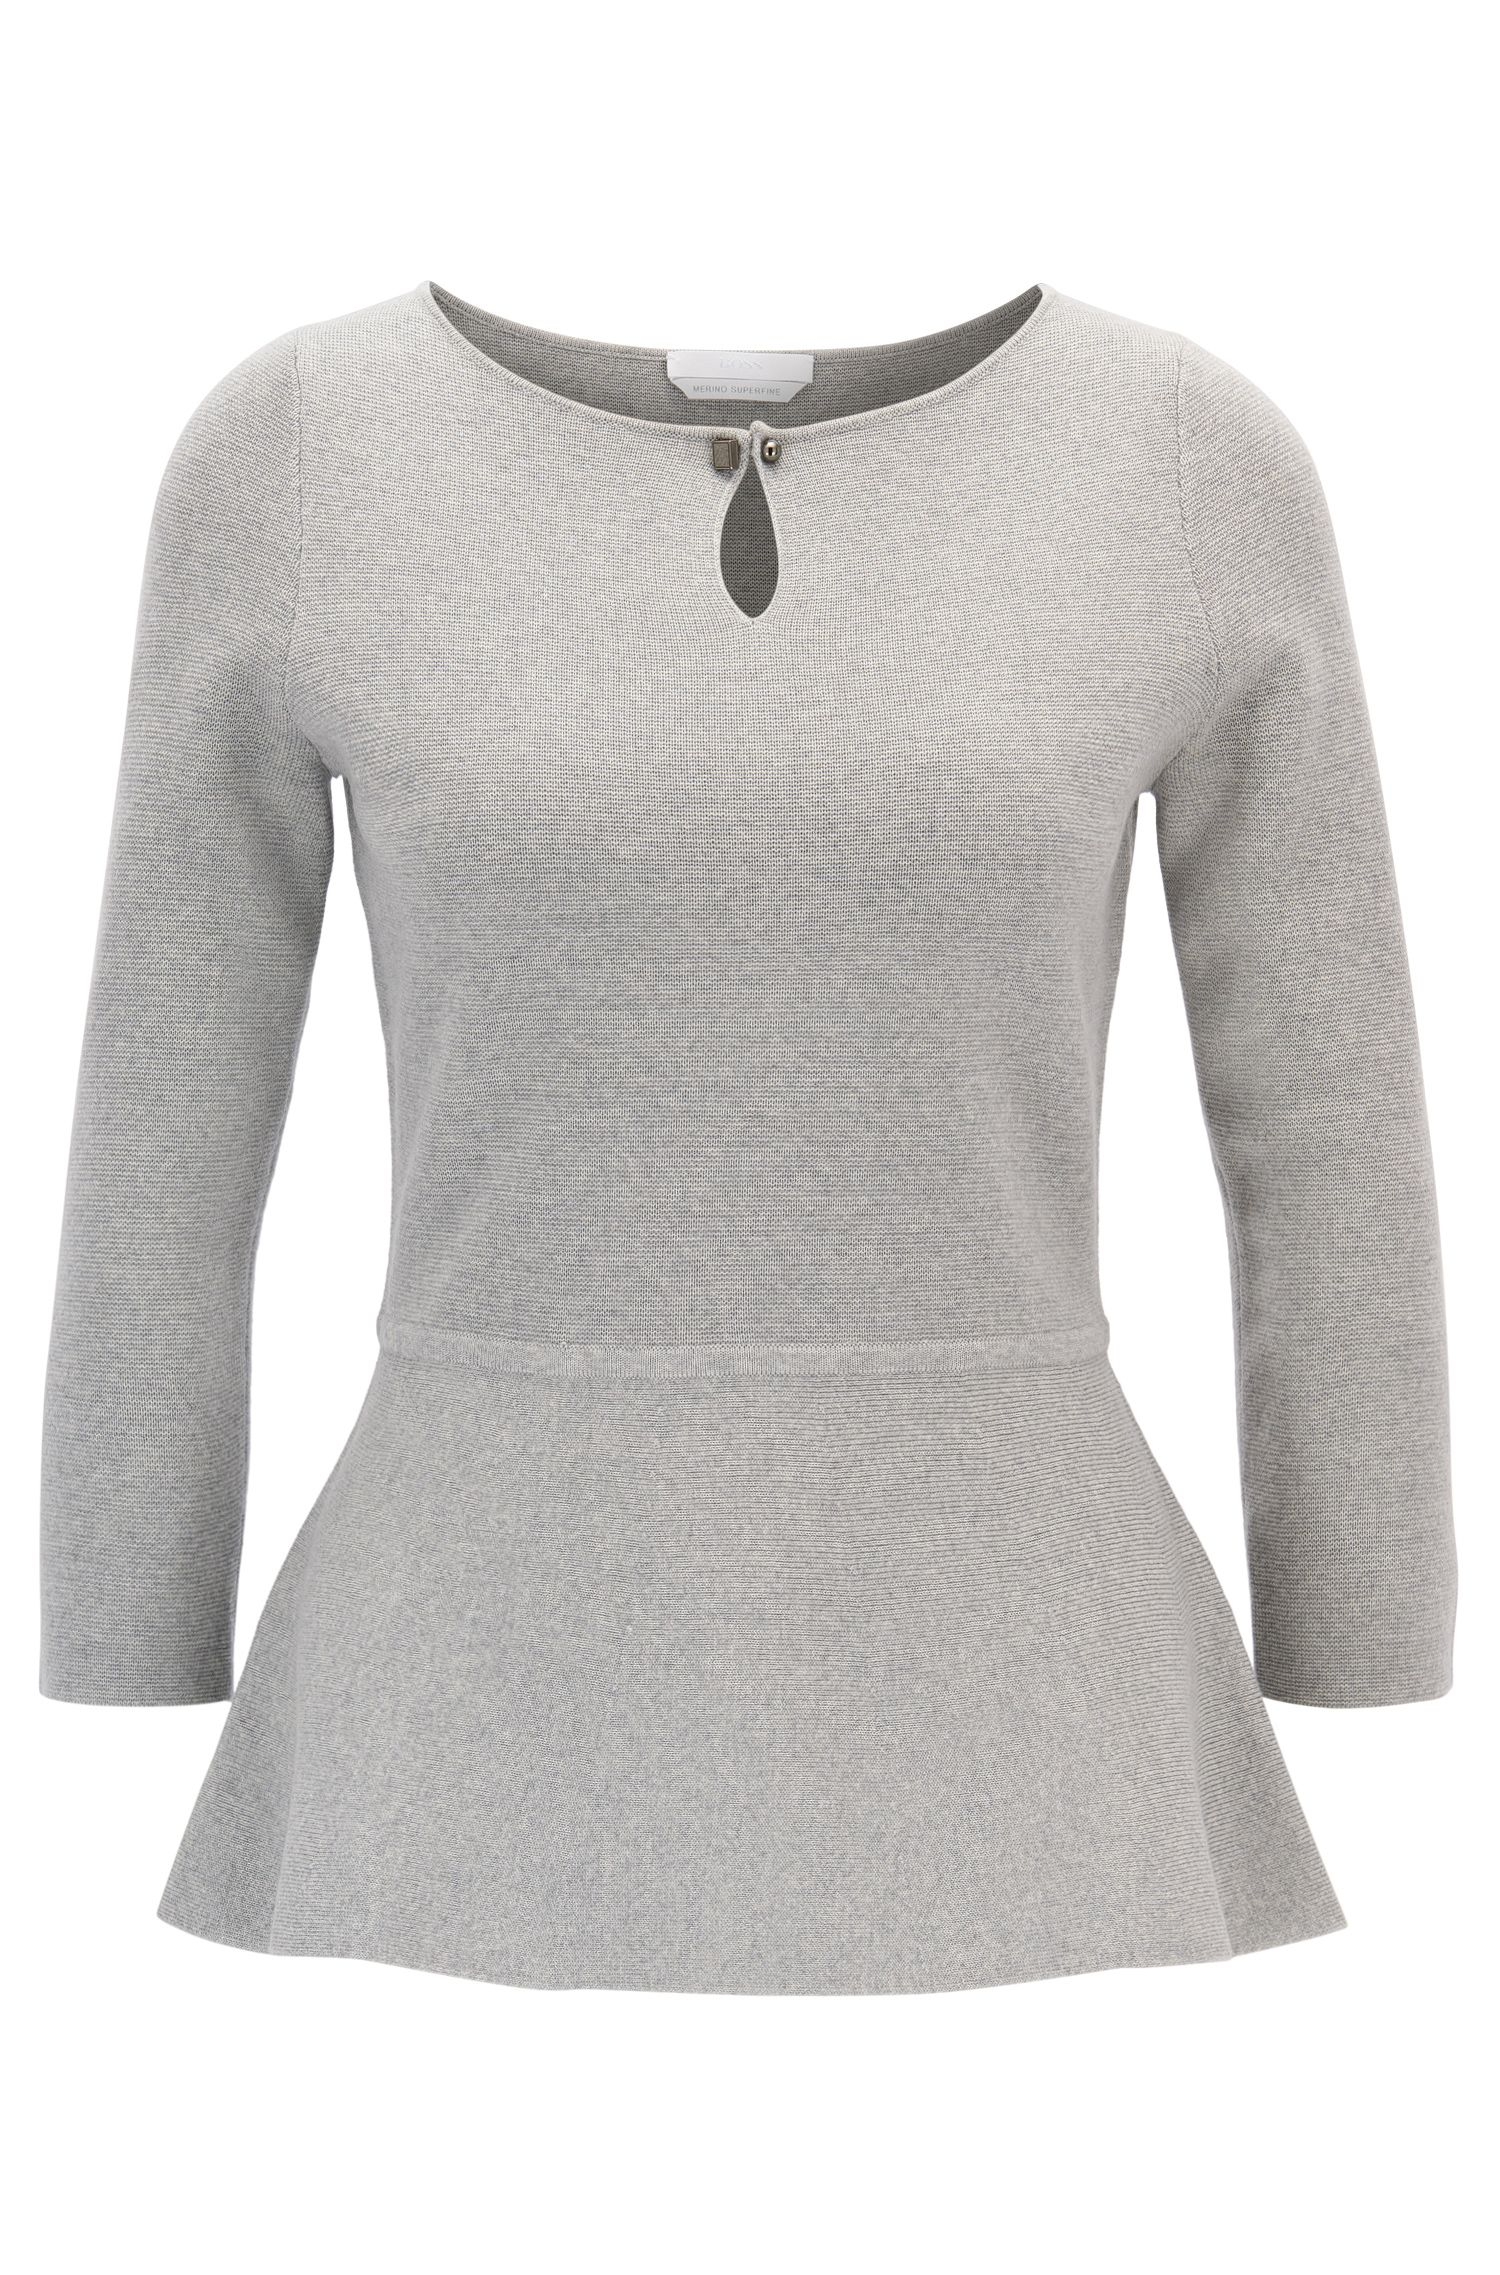 Slim-fit peplum sweater in mercerised virgin wool